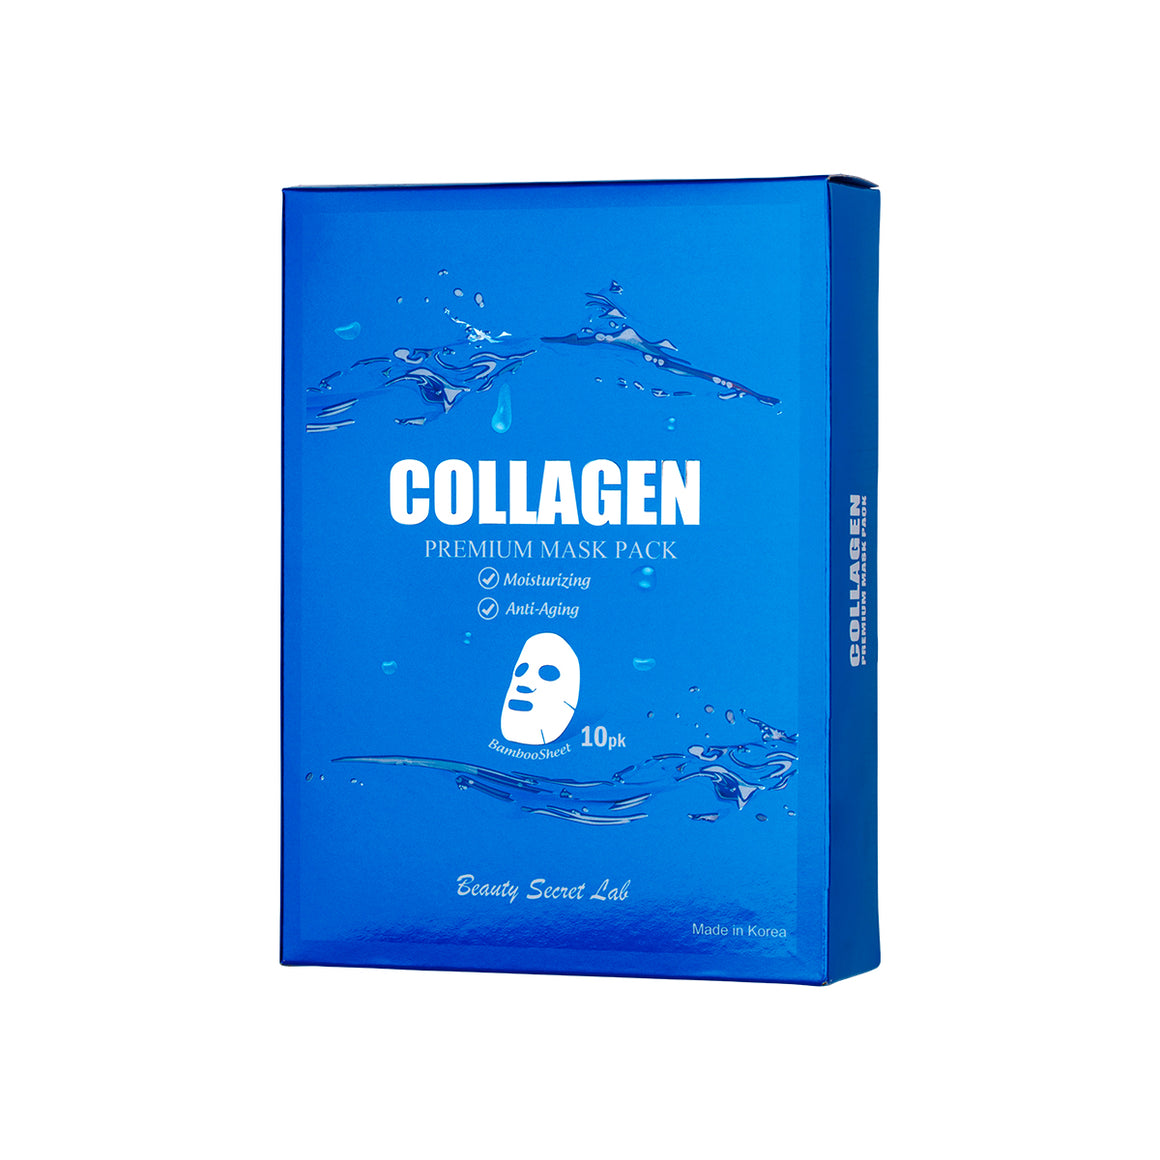 Collagen Premium Mask